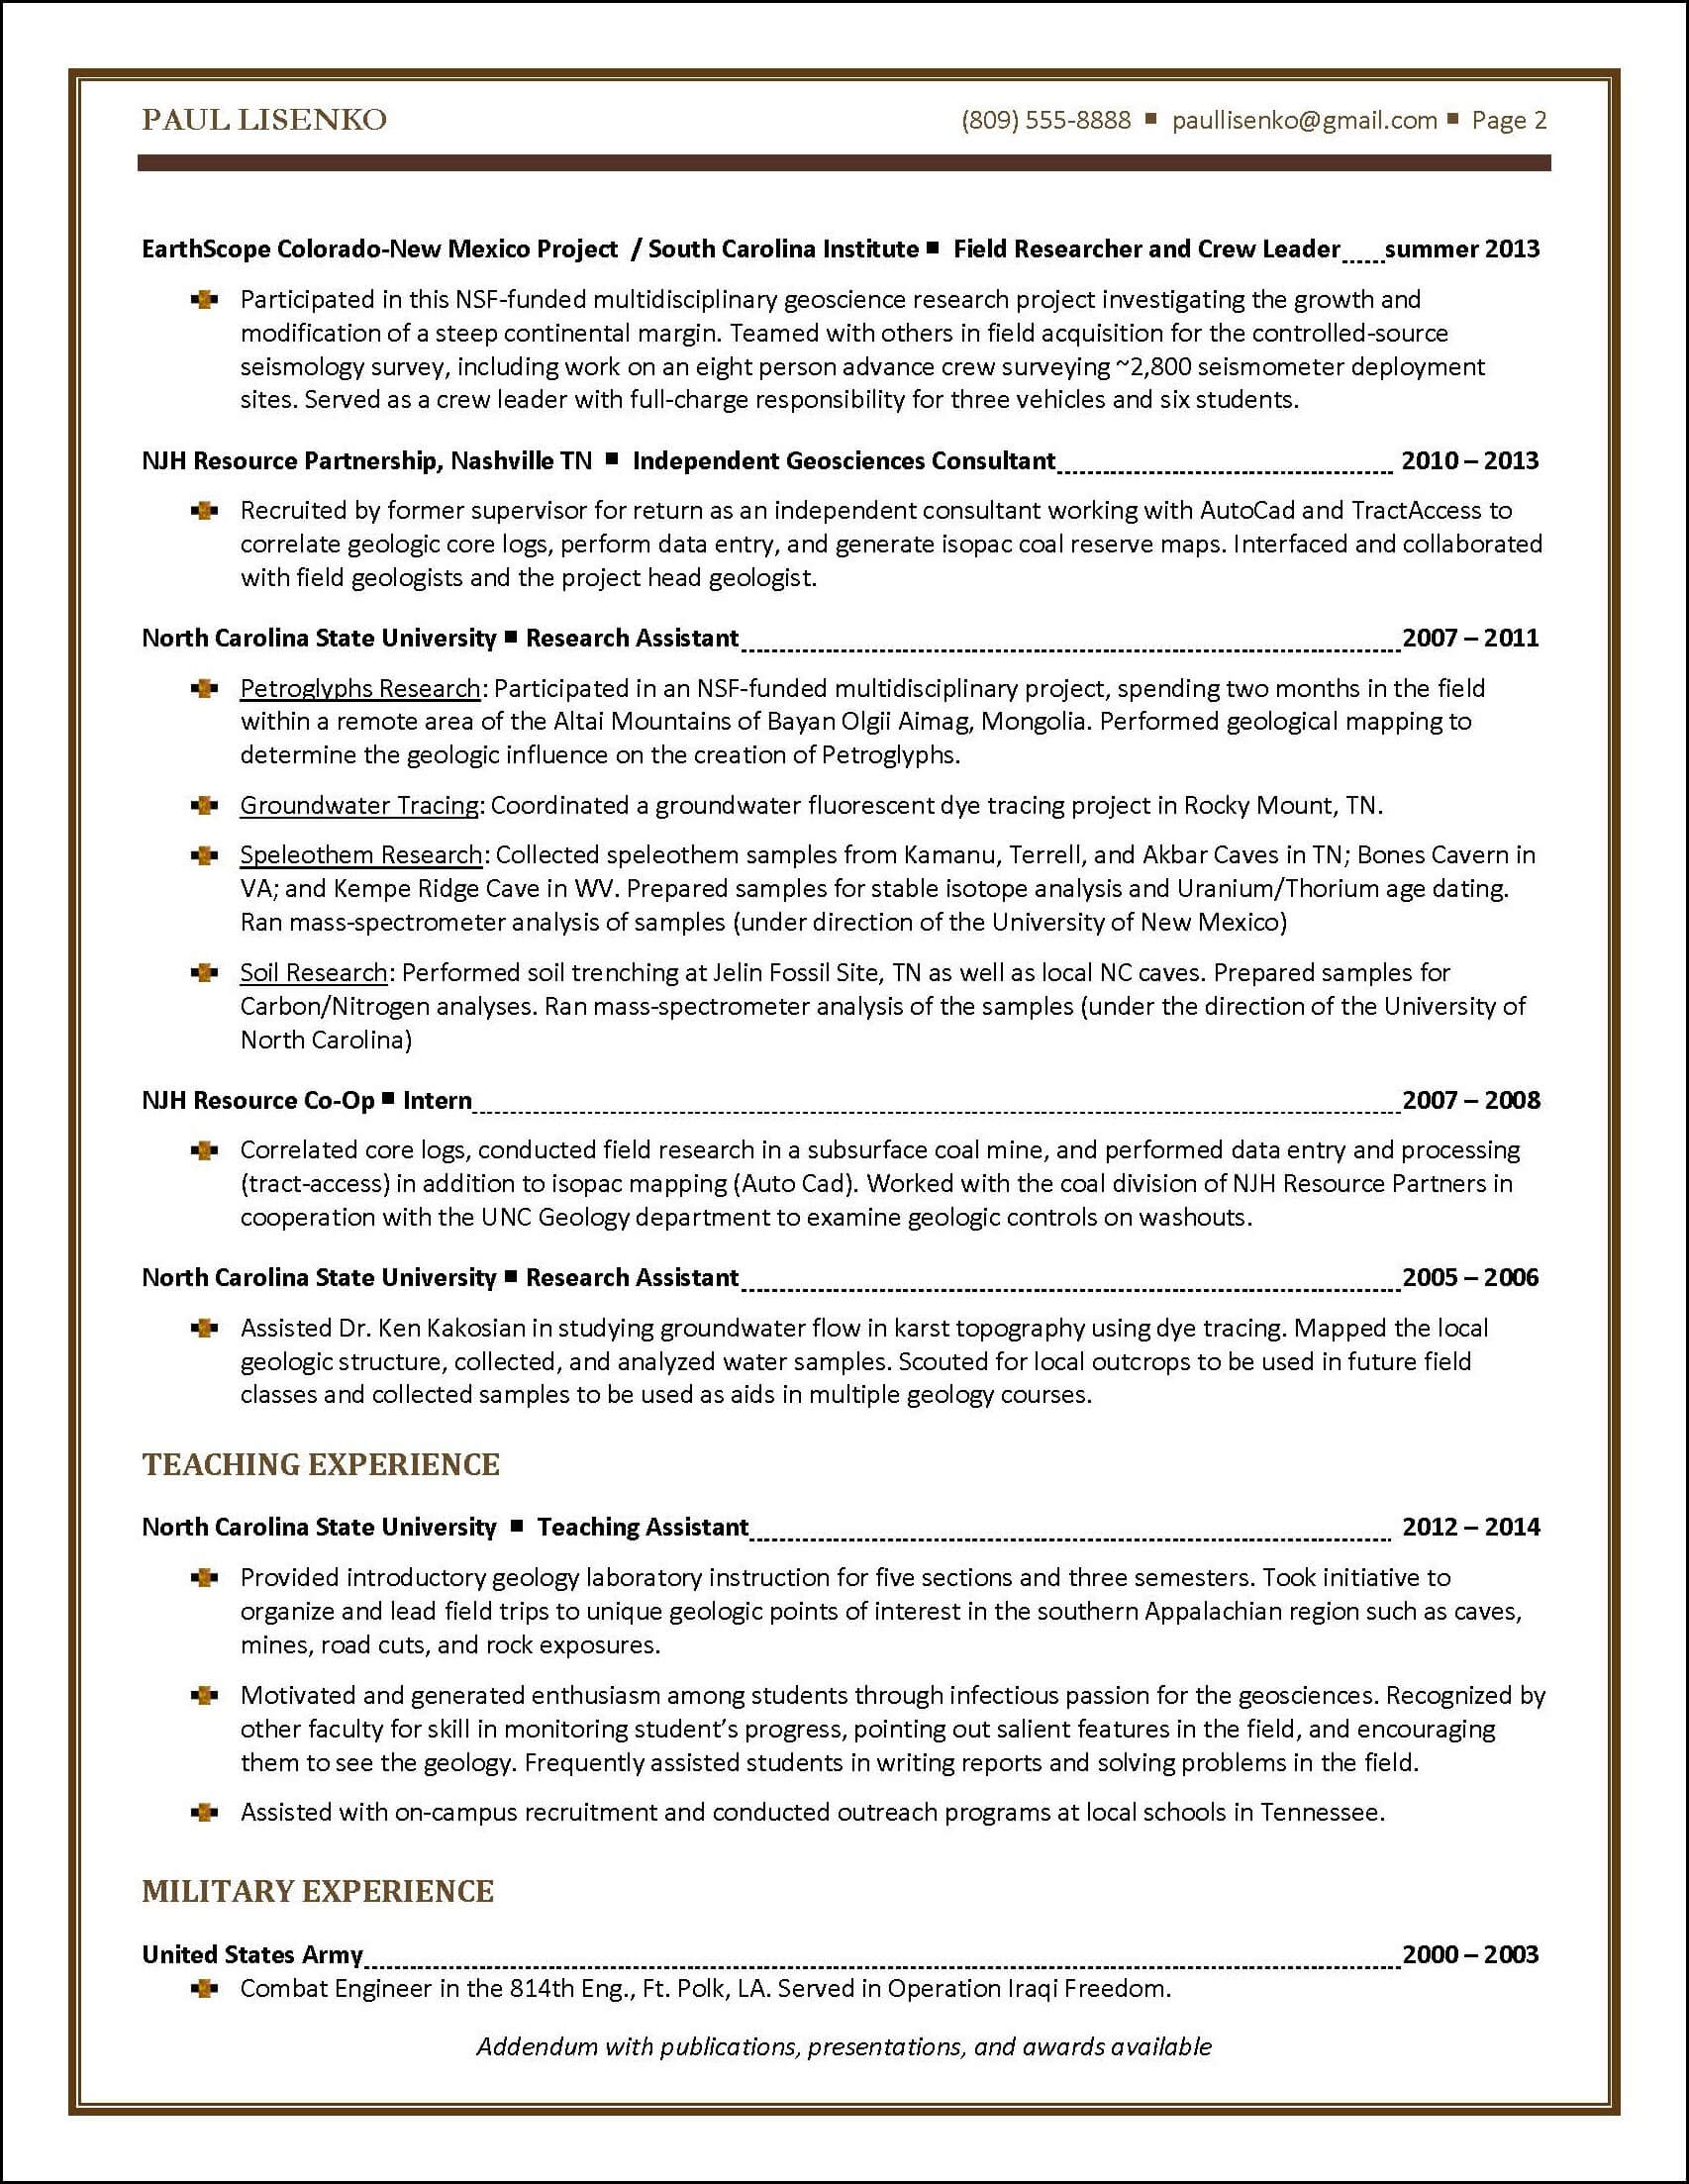 Commercial Paper Bloomberg Terminal Art Design Resume Templates